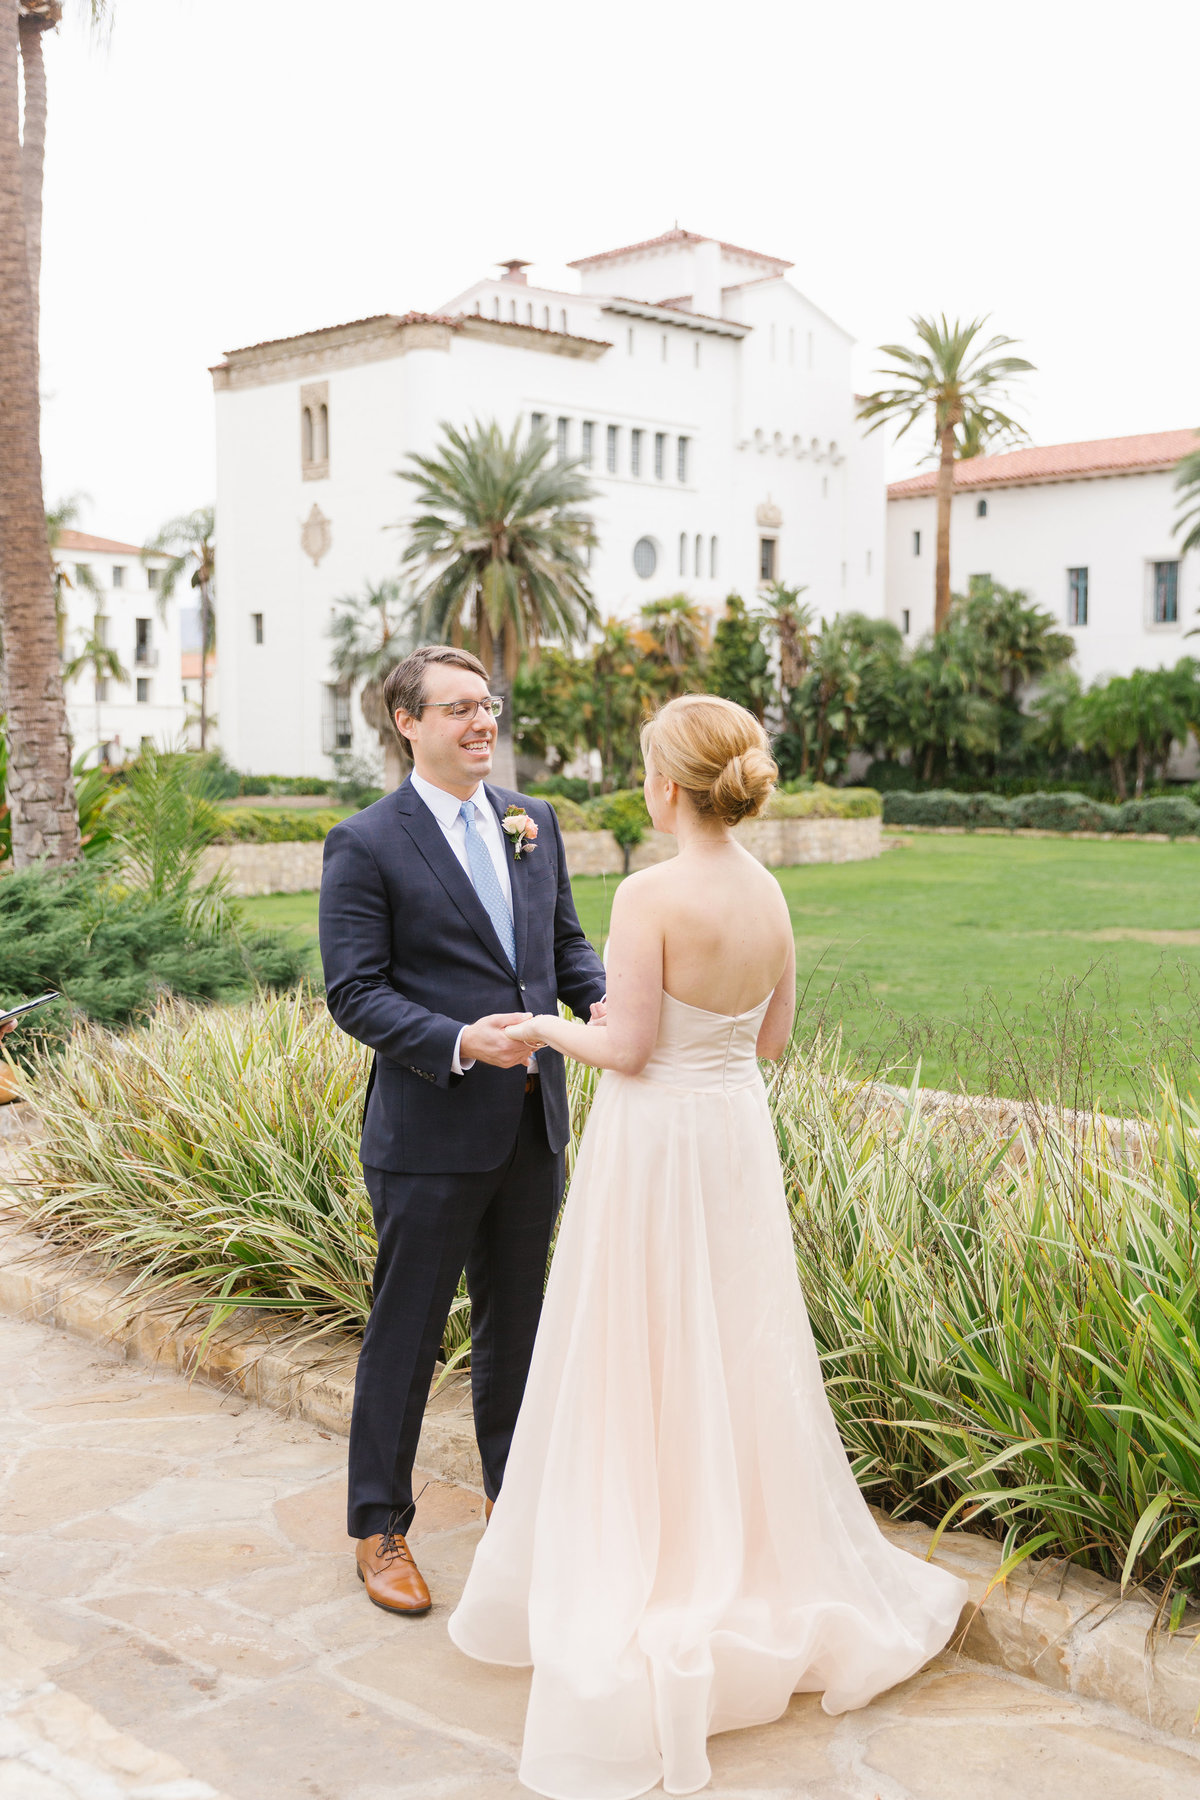 Intimate-Romantic-Santa-Barbara-Wedding-Venue-10